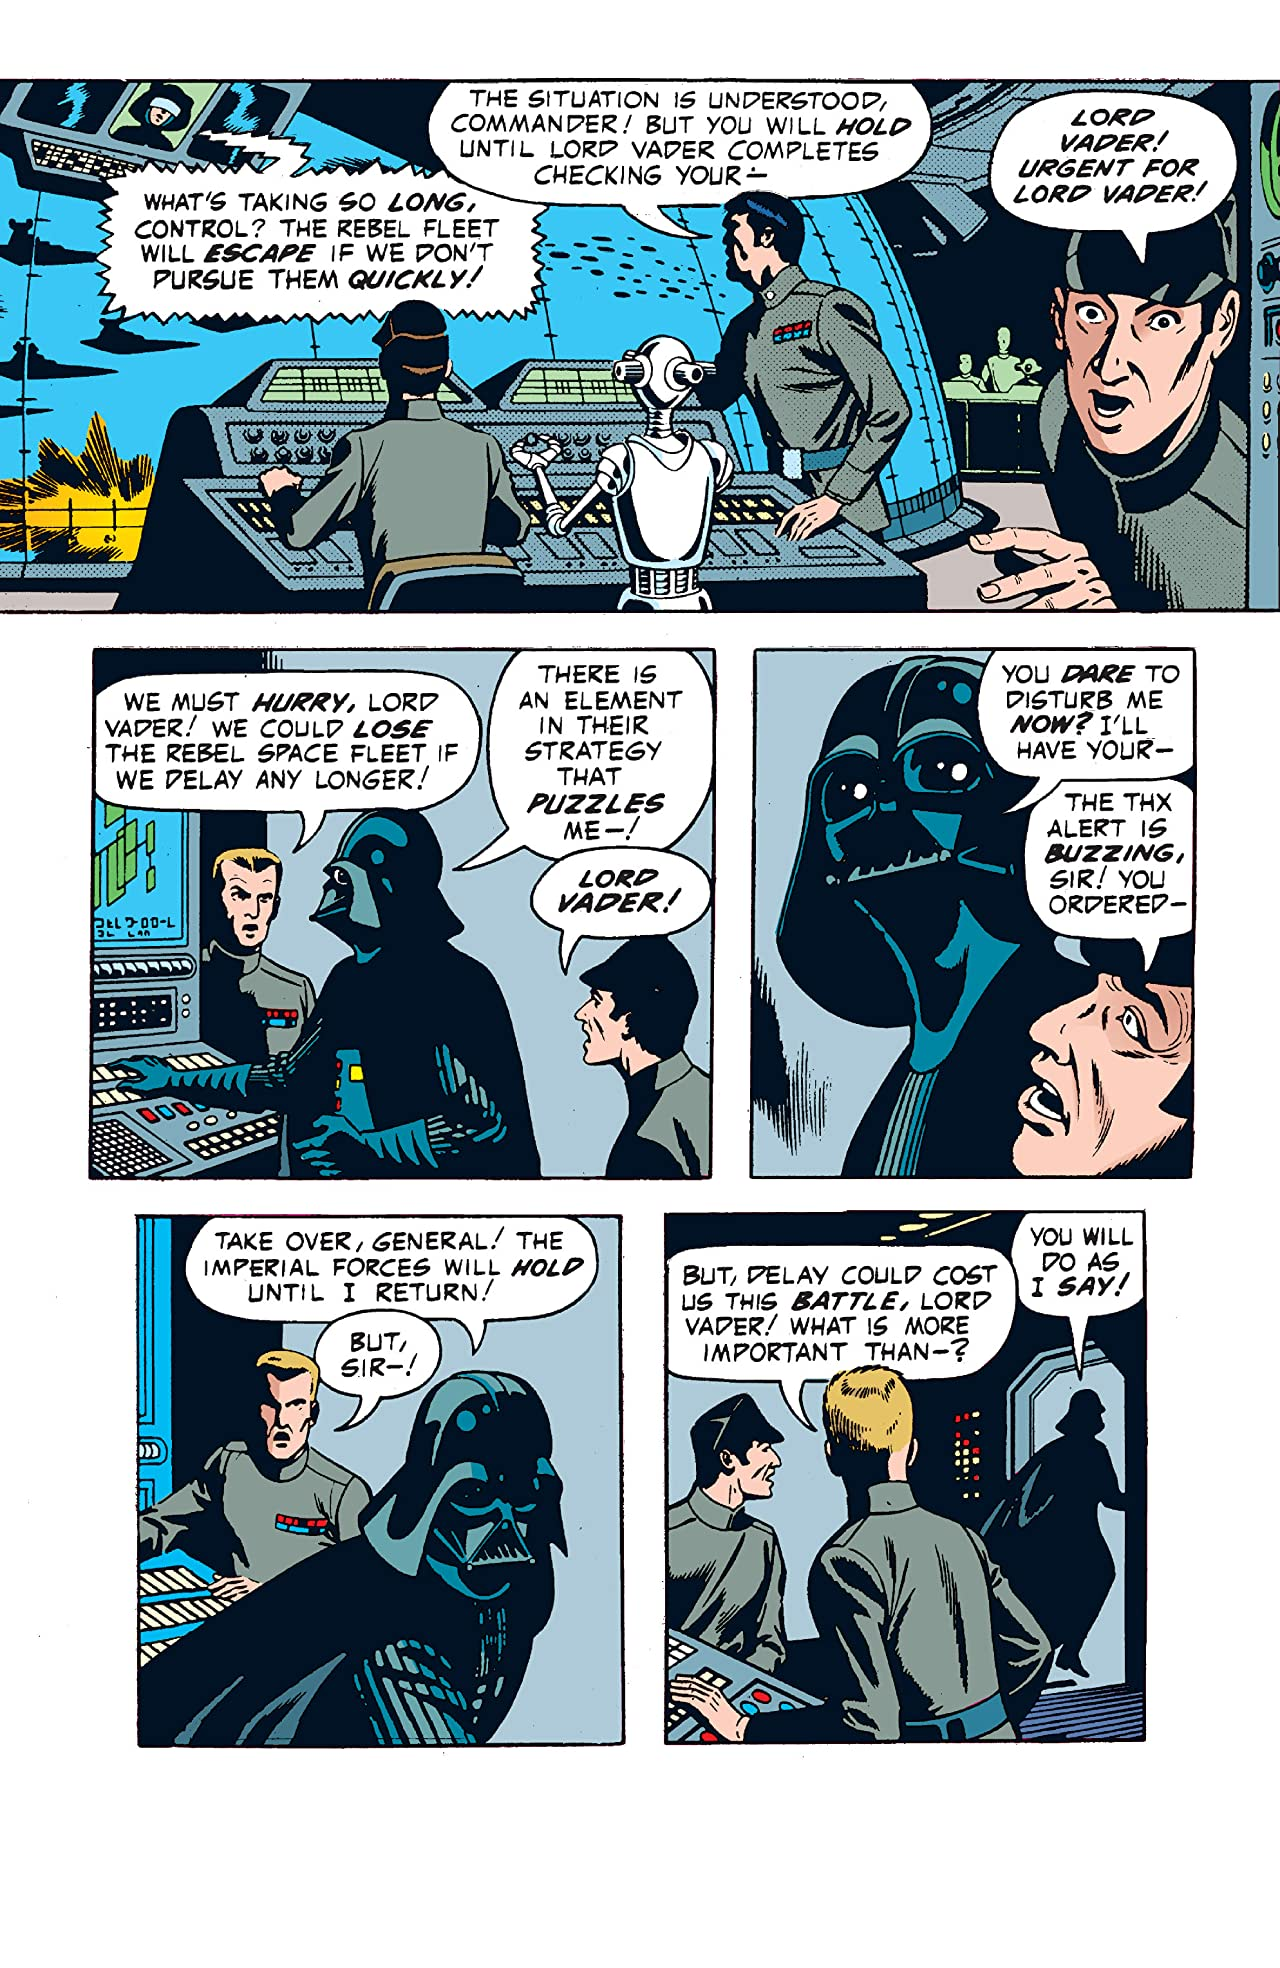 Classic Star Wars - Early Adventures